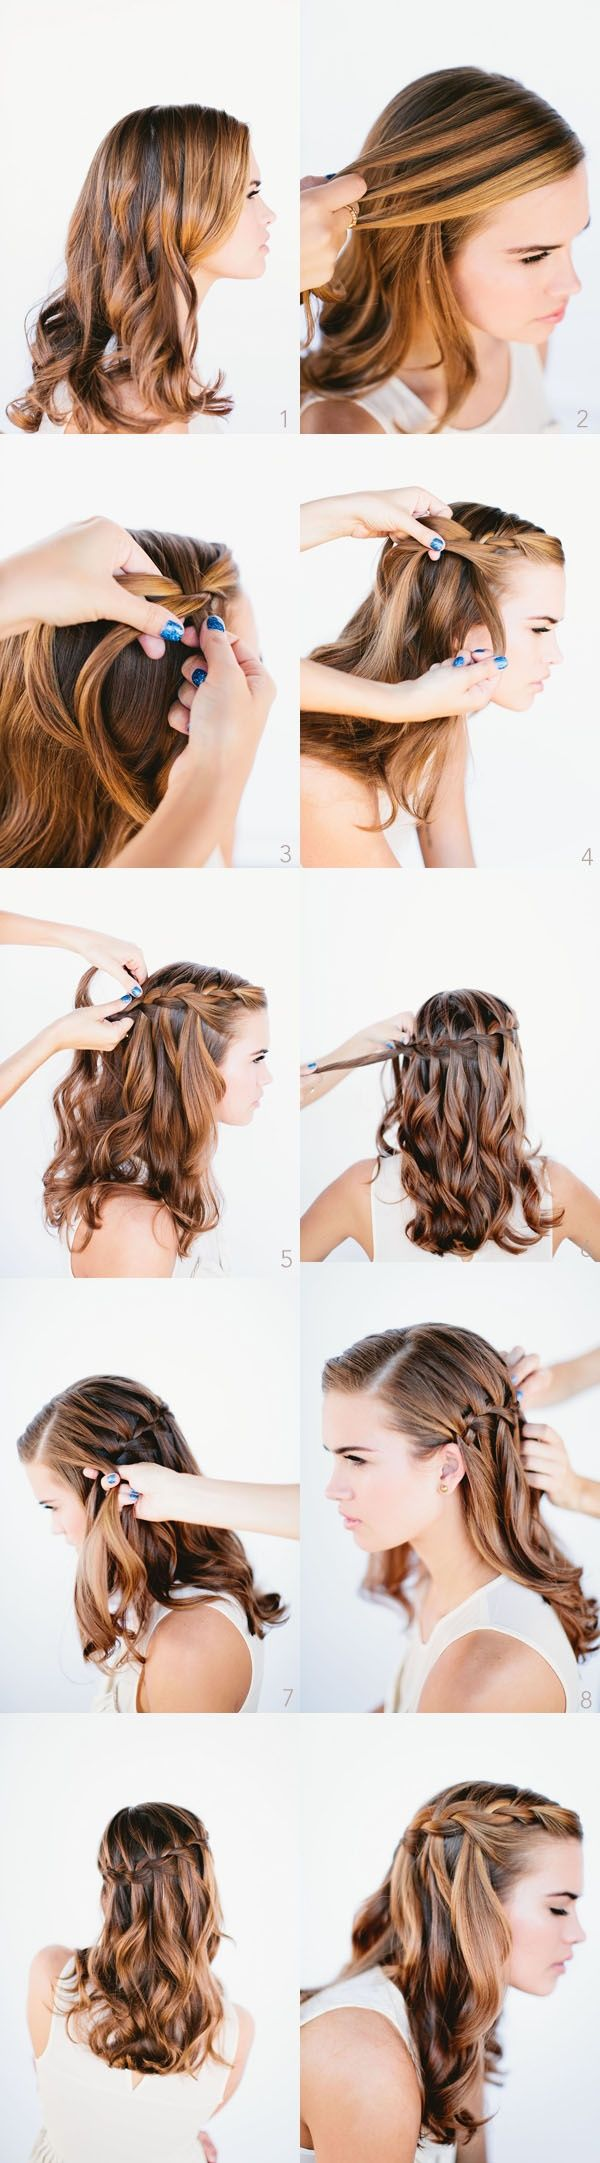 A romantic waterfall braid would be perfect for upcoming holiday parties! #braid #hair